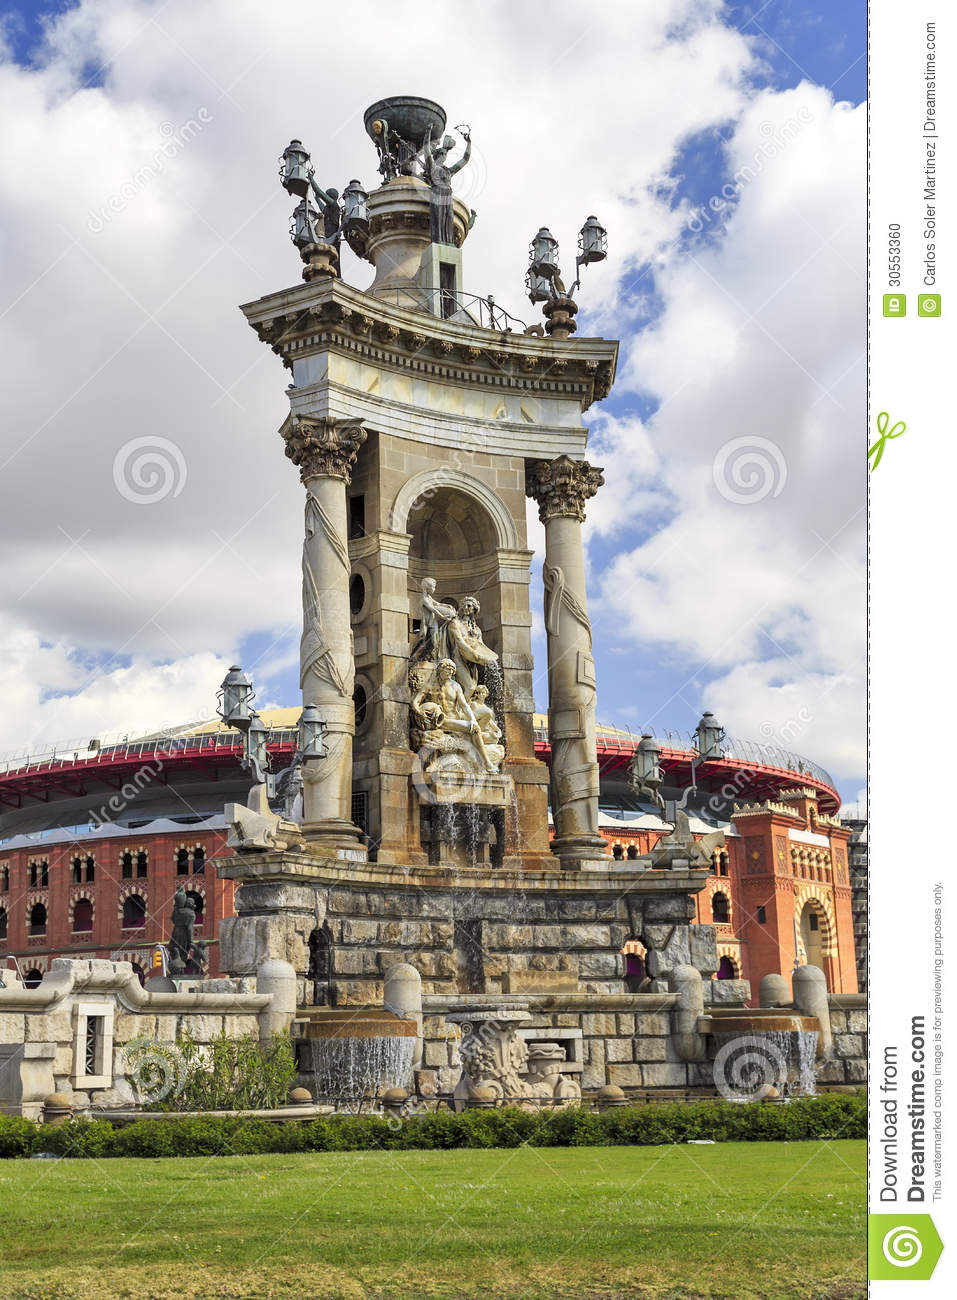 Monumental fountain in Plaza Spain, Barcelona